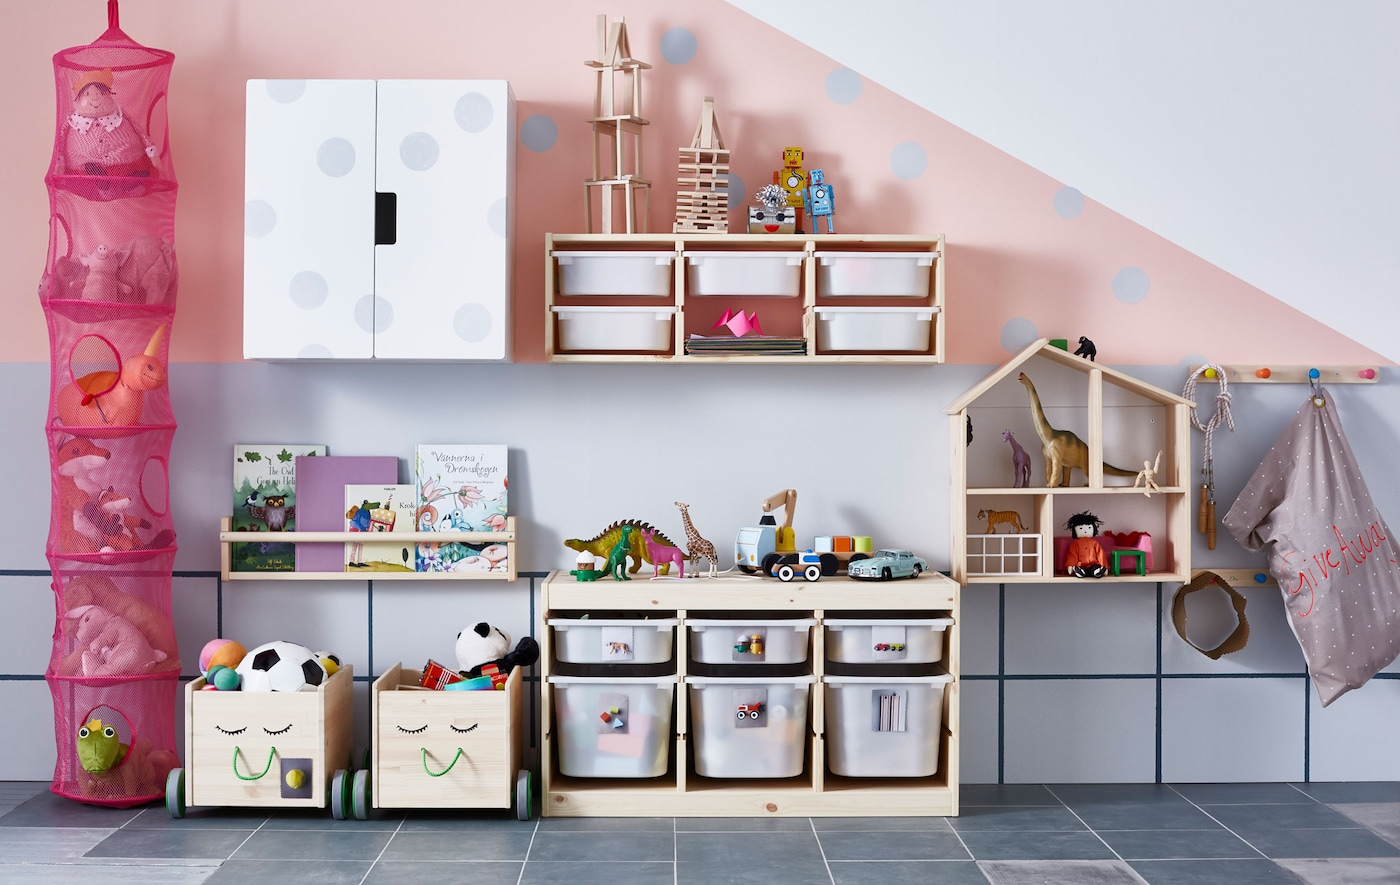 TROFAST storage combinations along with cabinets, shelves, and boxes that organize the toys in this children's room.